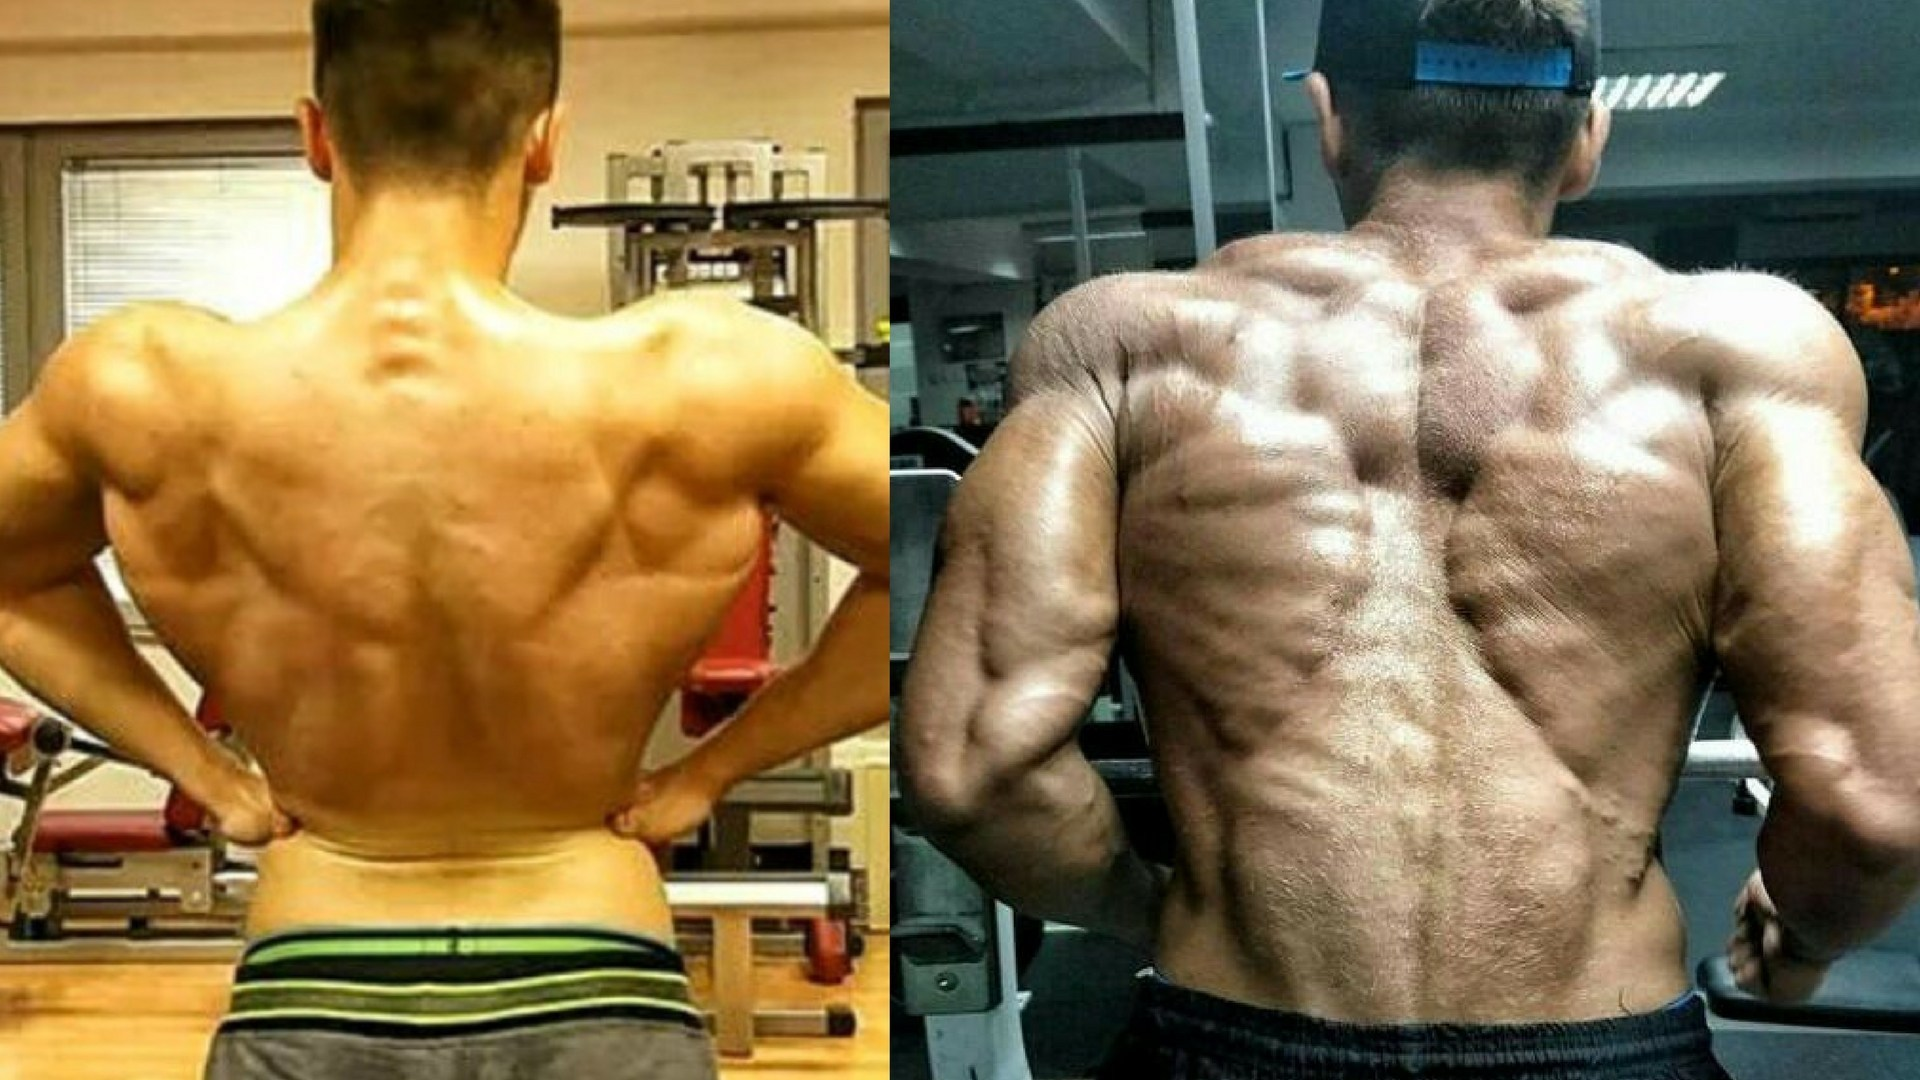 Find out how easy it is to buy sarms (comprarsarms) from the most trusted providers on the internet